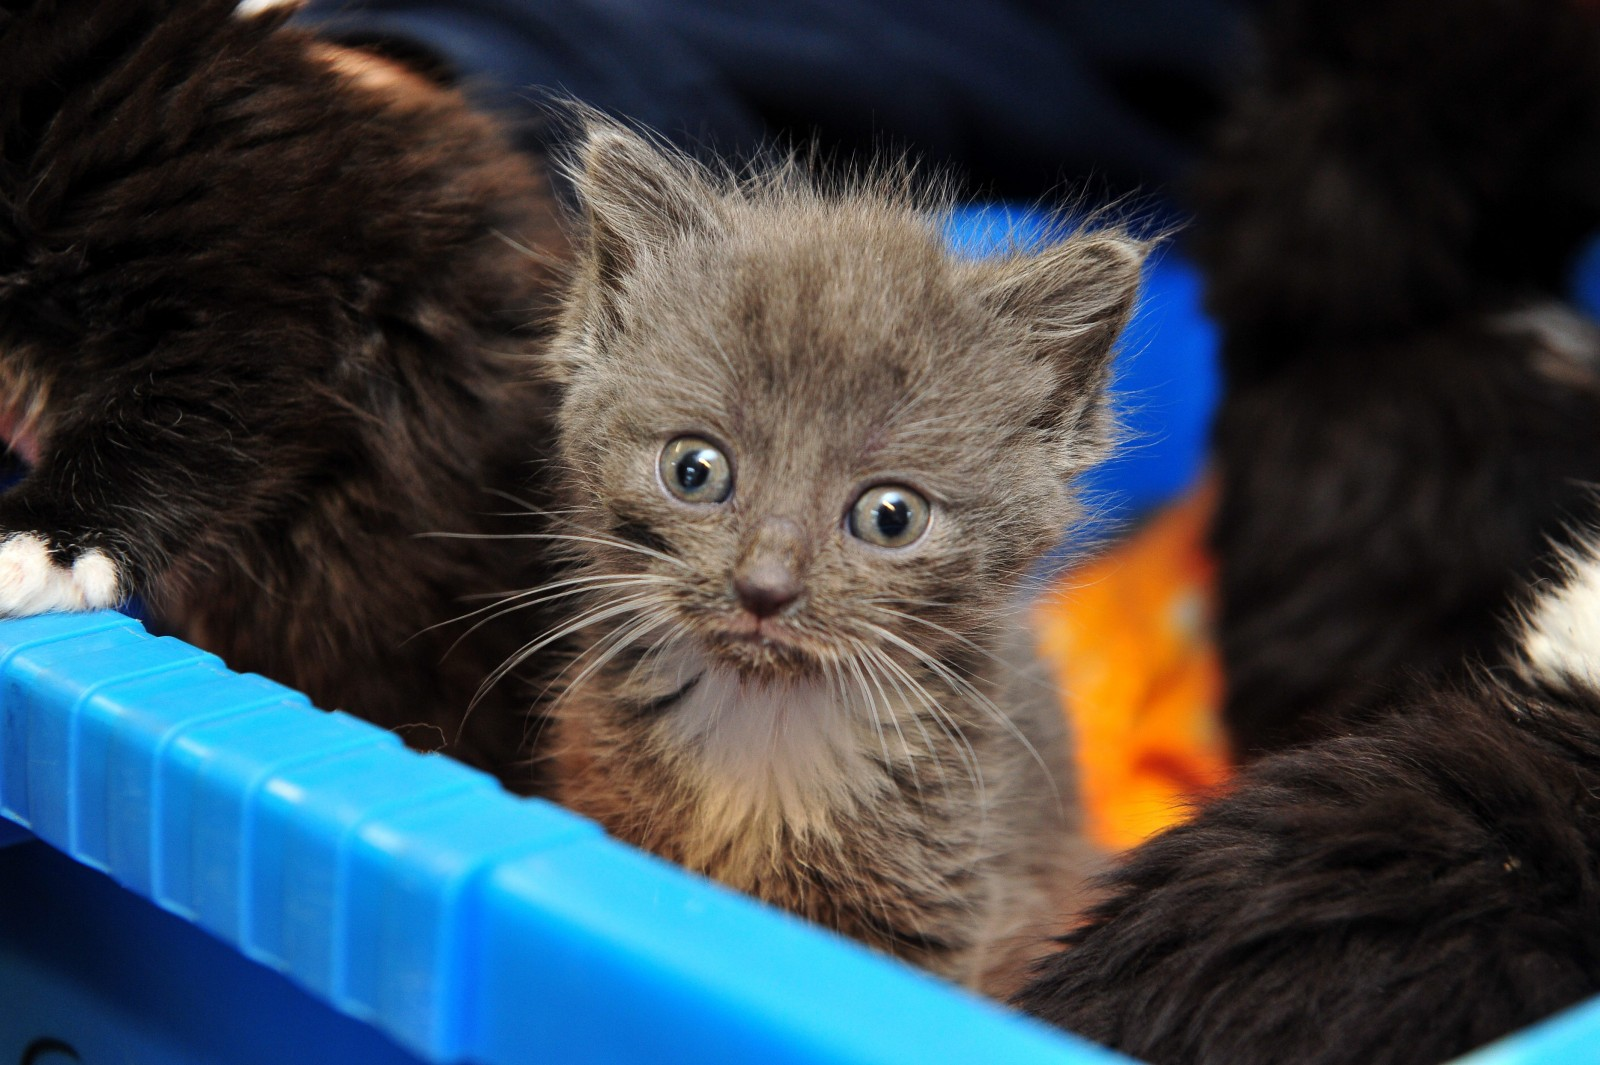 'There is no excuse for this' Terrified newborn kittens cruelly dumped on doorstep